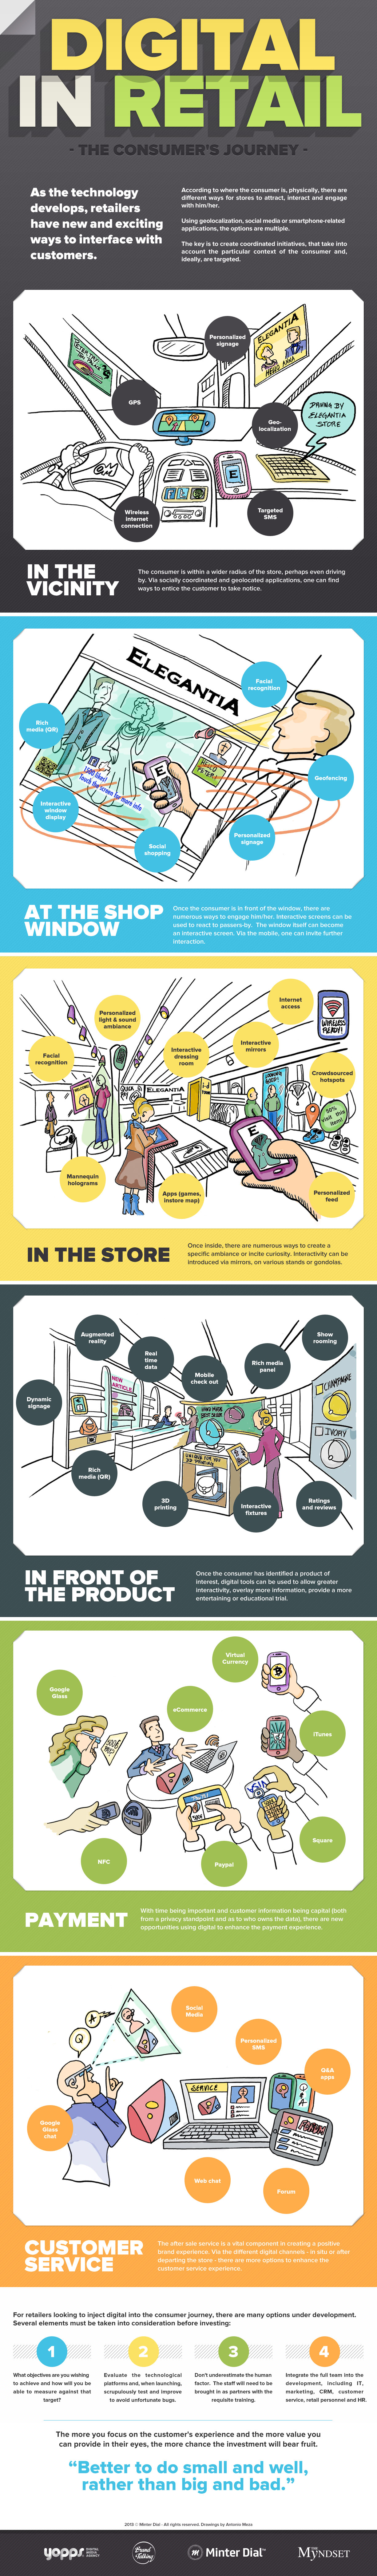 how to integrate digital in retail